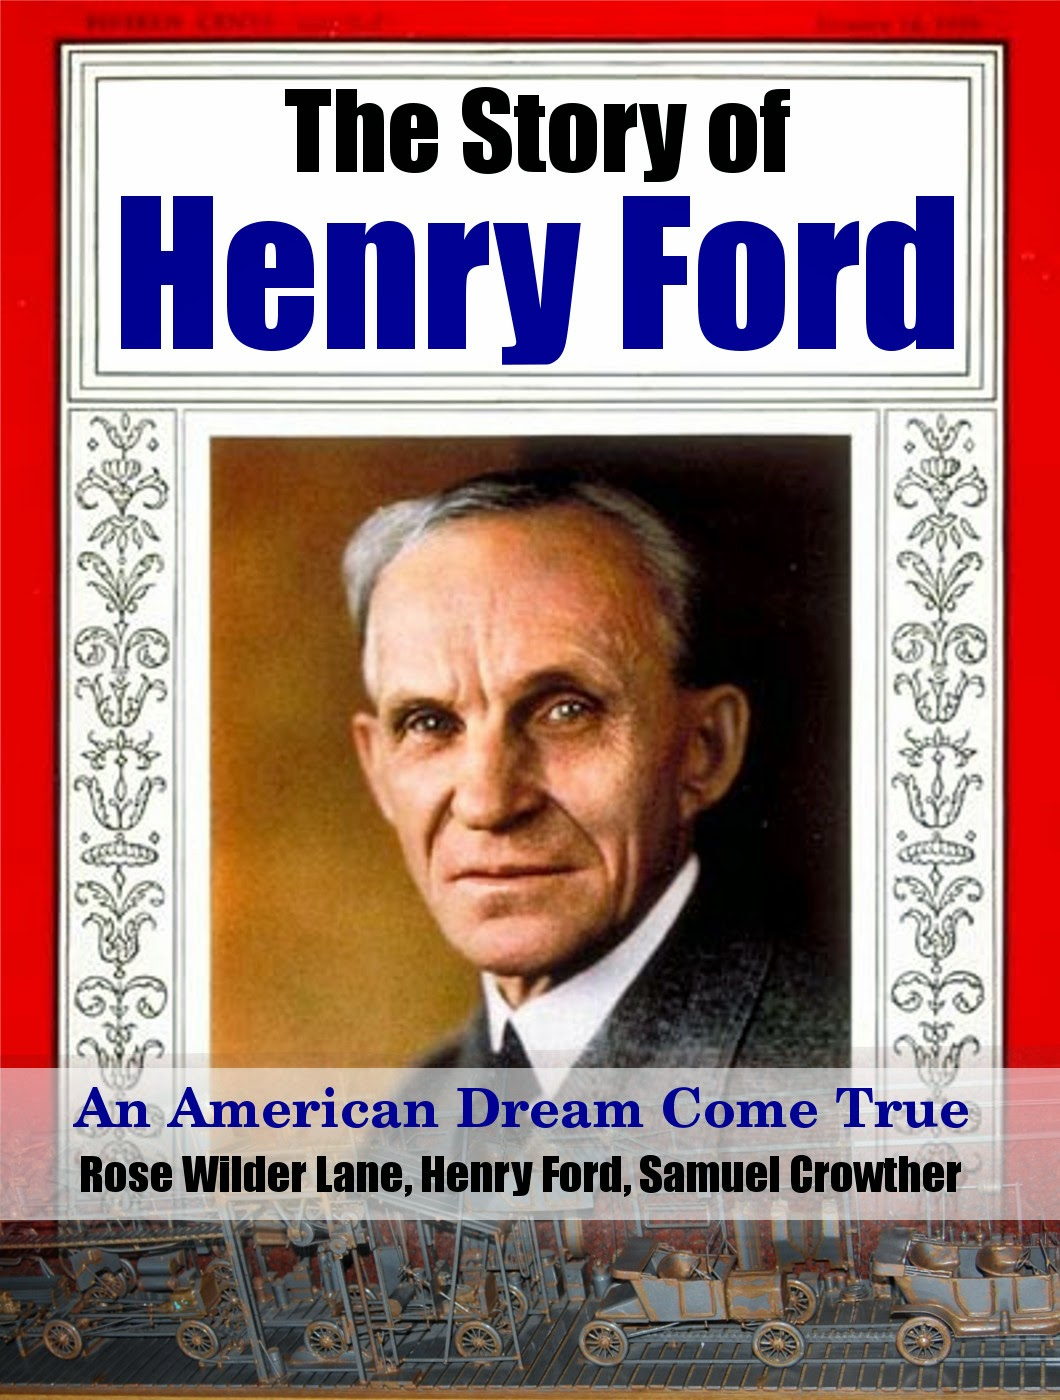 An Authentic, First Hand Biography - The Story of Henry Ford